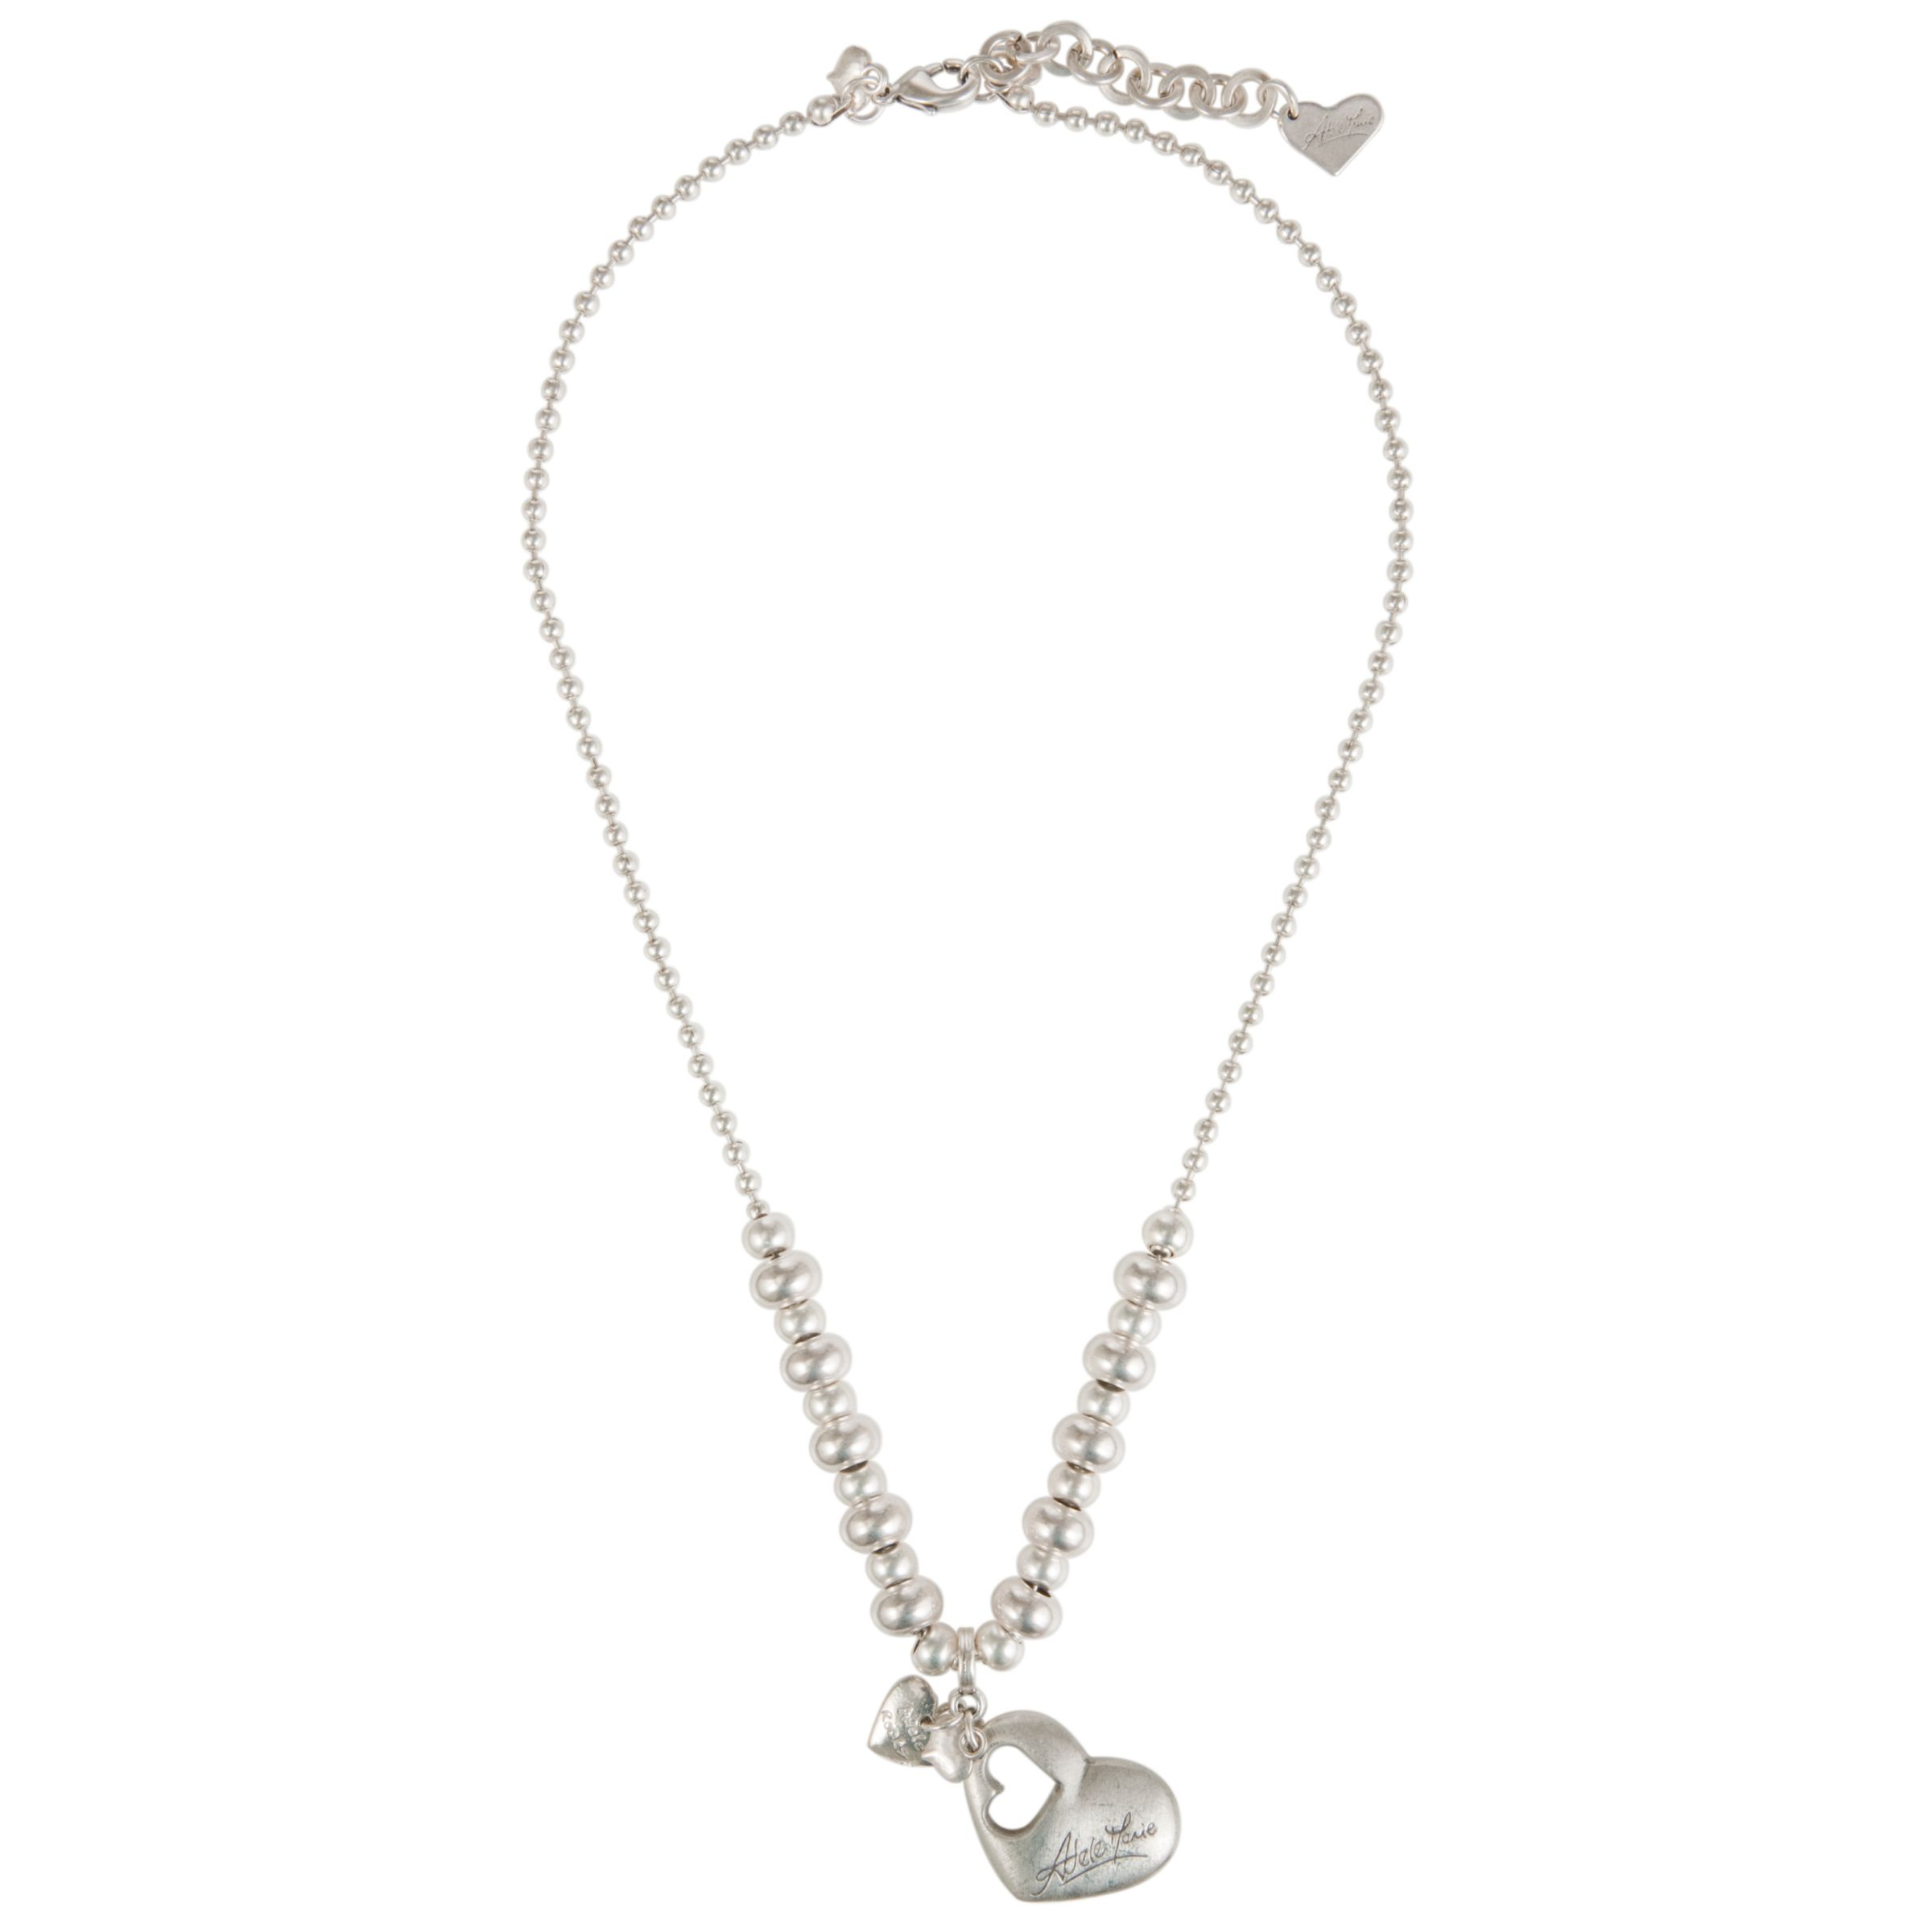 Adele Marie Silver Plated Heart Pendant Necklace